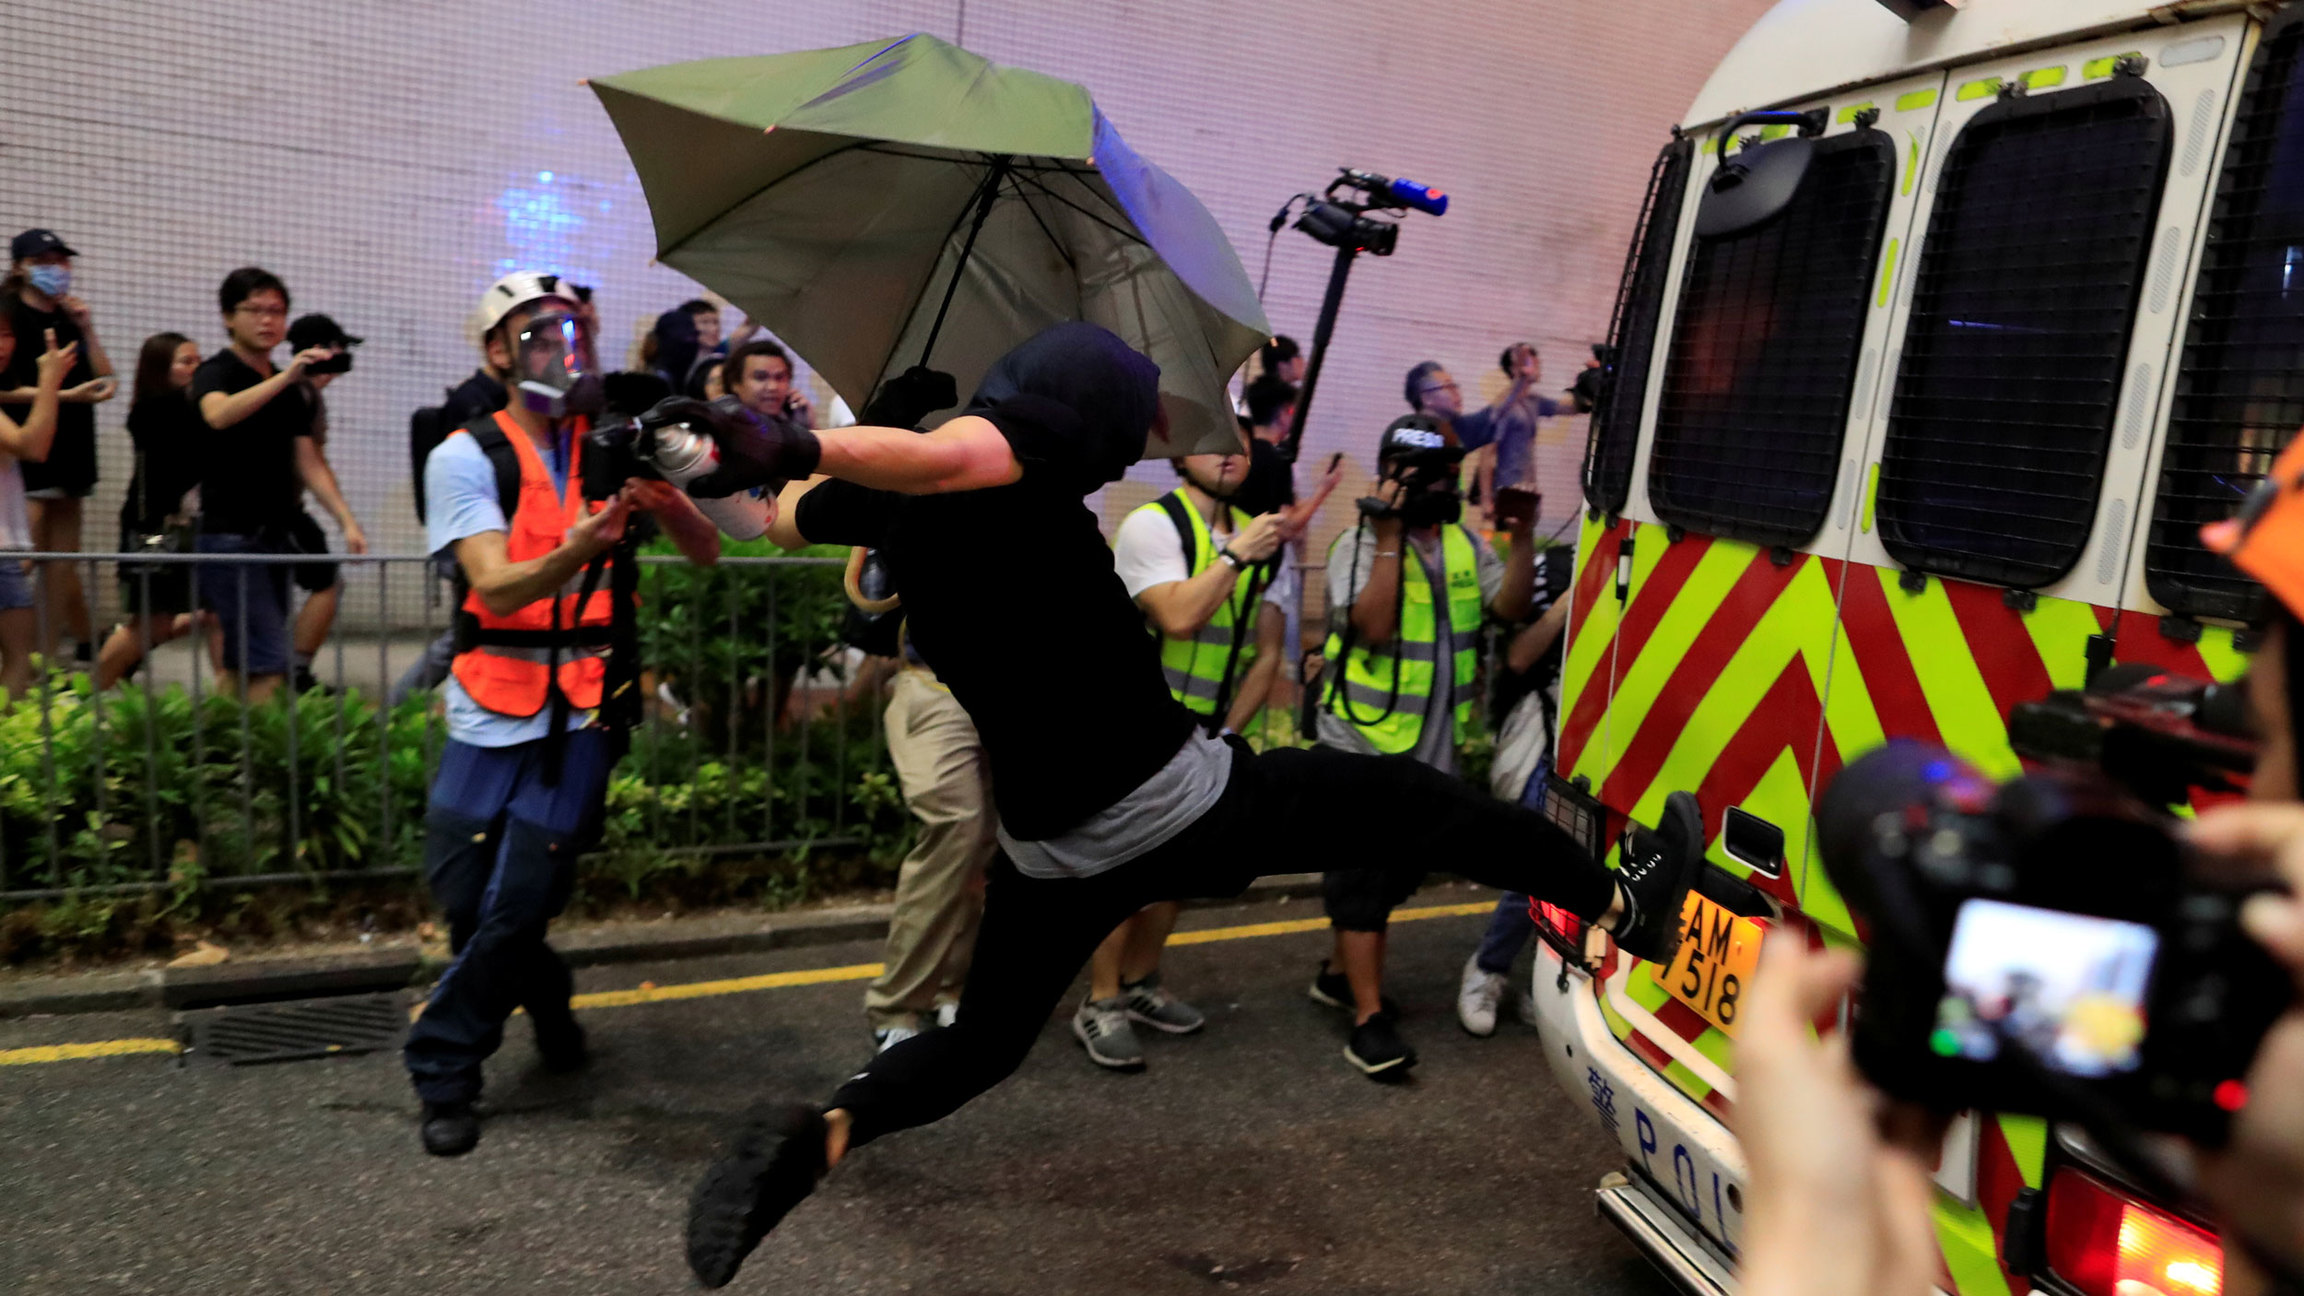 A protester is shown in mid-air kicking a police vehicle with their face fully covered in a mask.